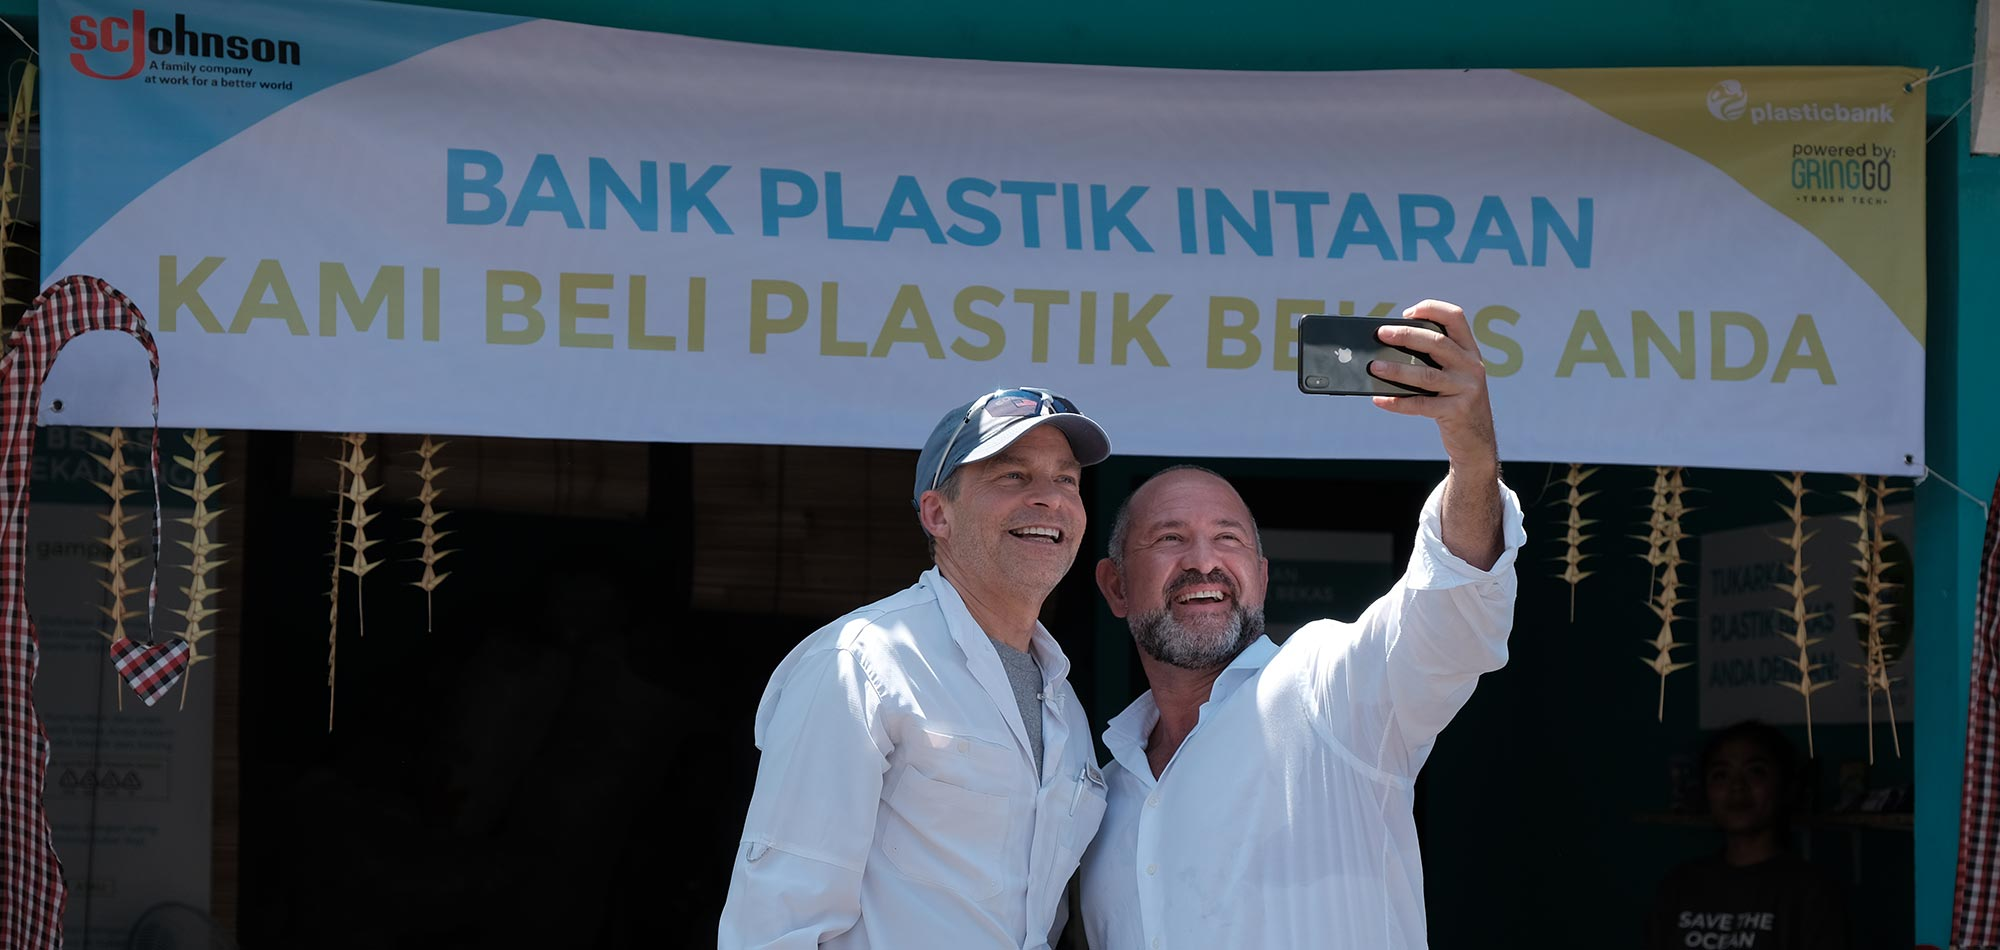 O Presidente do conselho e CEO da SC Johnson Fisk Johnson e David Katz, CEO do Plastic Bank, abriram o primeiro de oito centros de reciclagem na Indonésia.